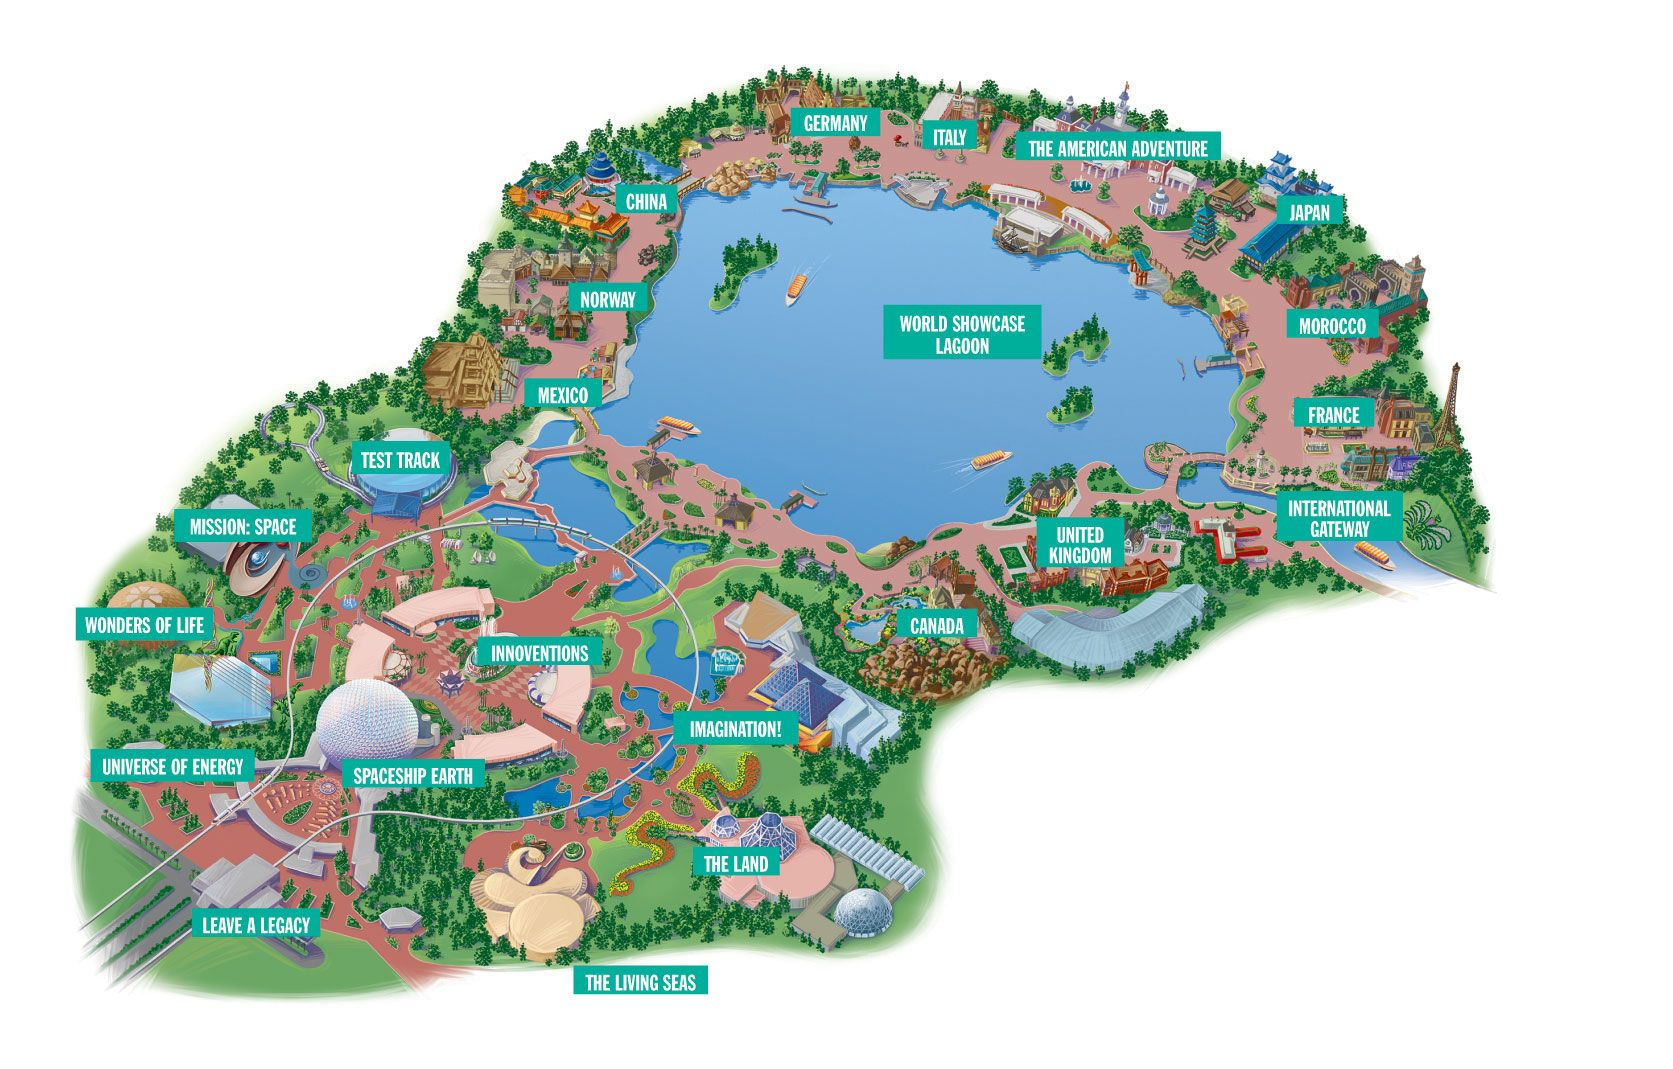 Reveillon Na Disney: Como Foi A Festa No Epcot Center | Places I - Epcot Florida Map